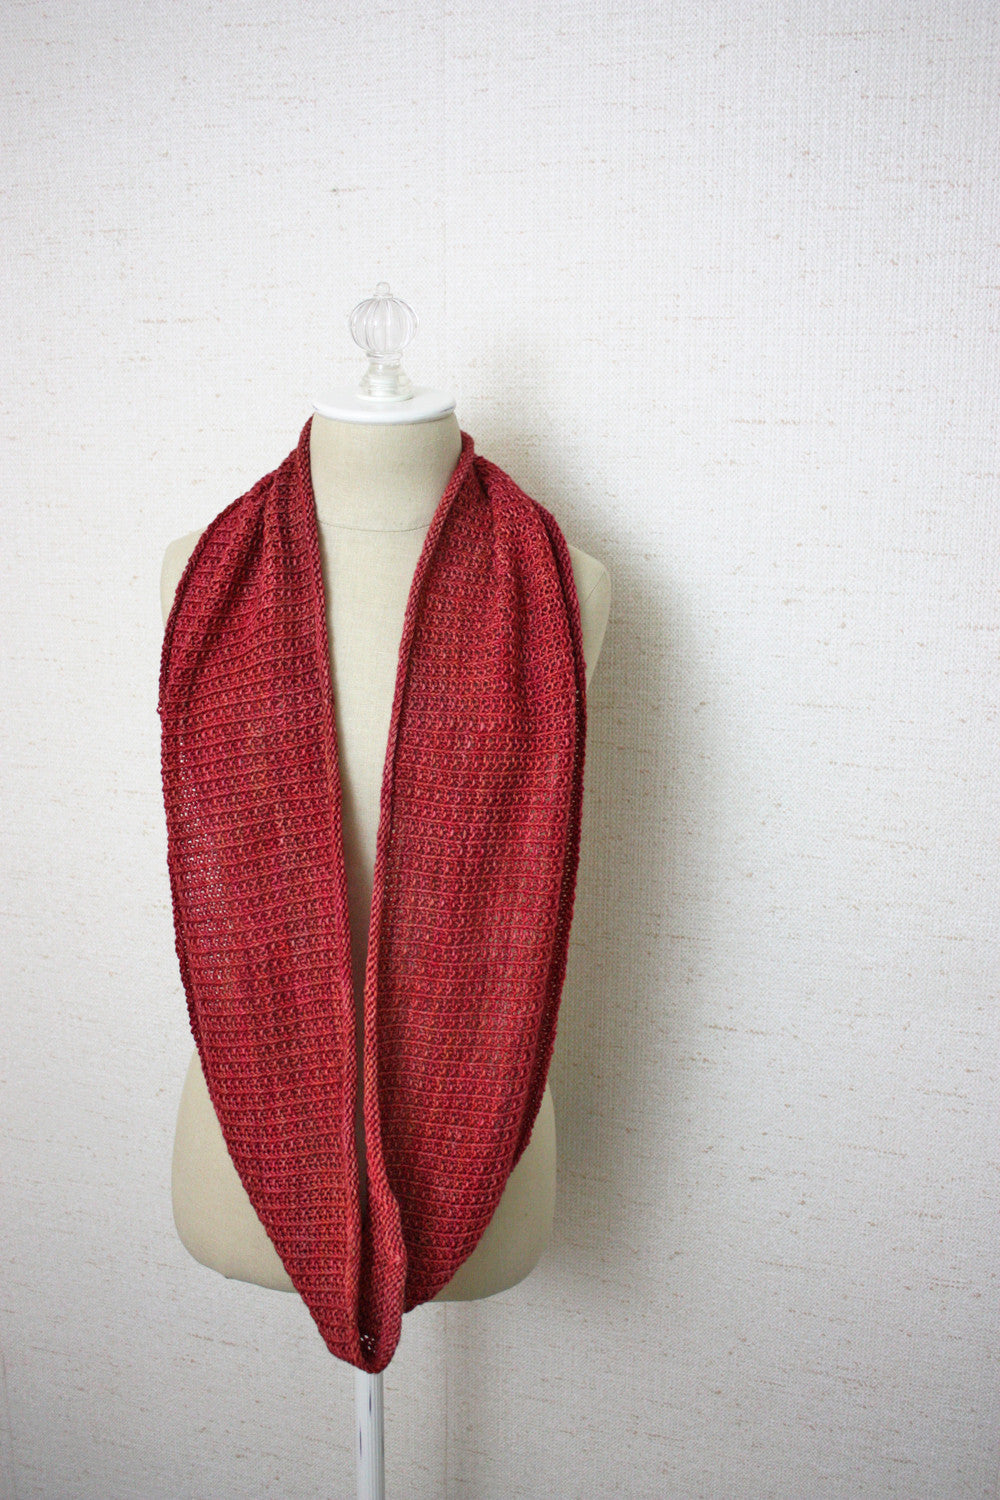 Belgique Infinity Scarf Cowl Knitting Pattern Phydeaux Designs